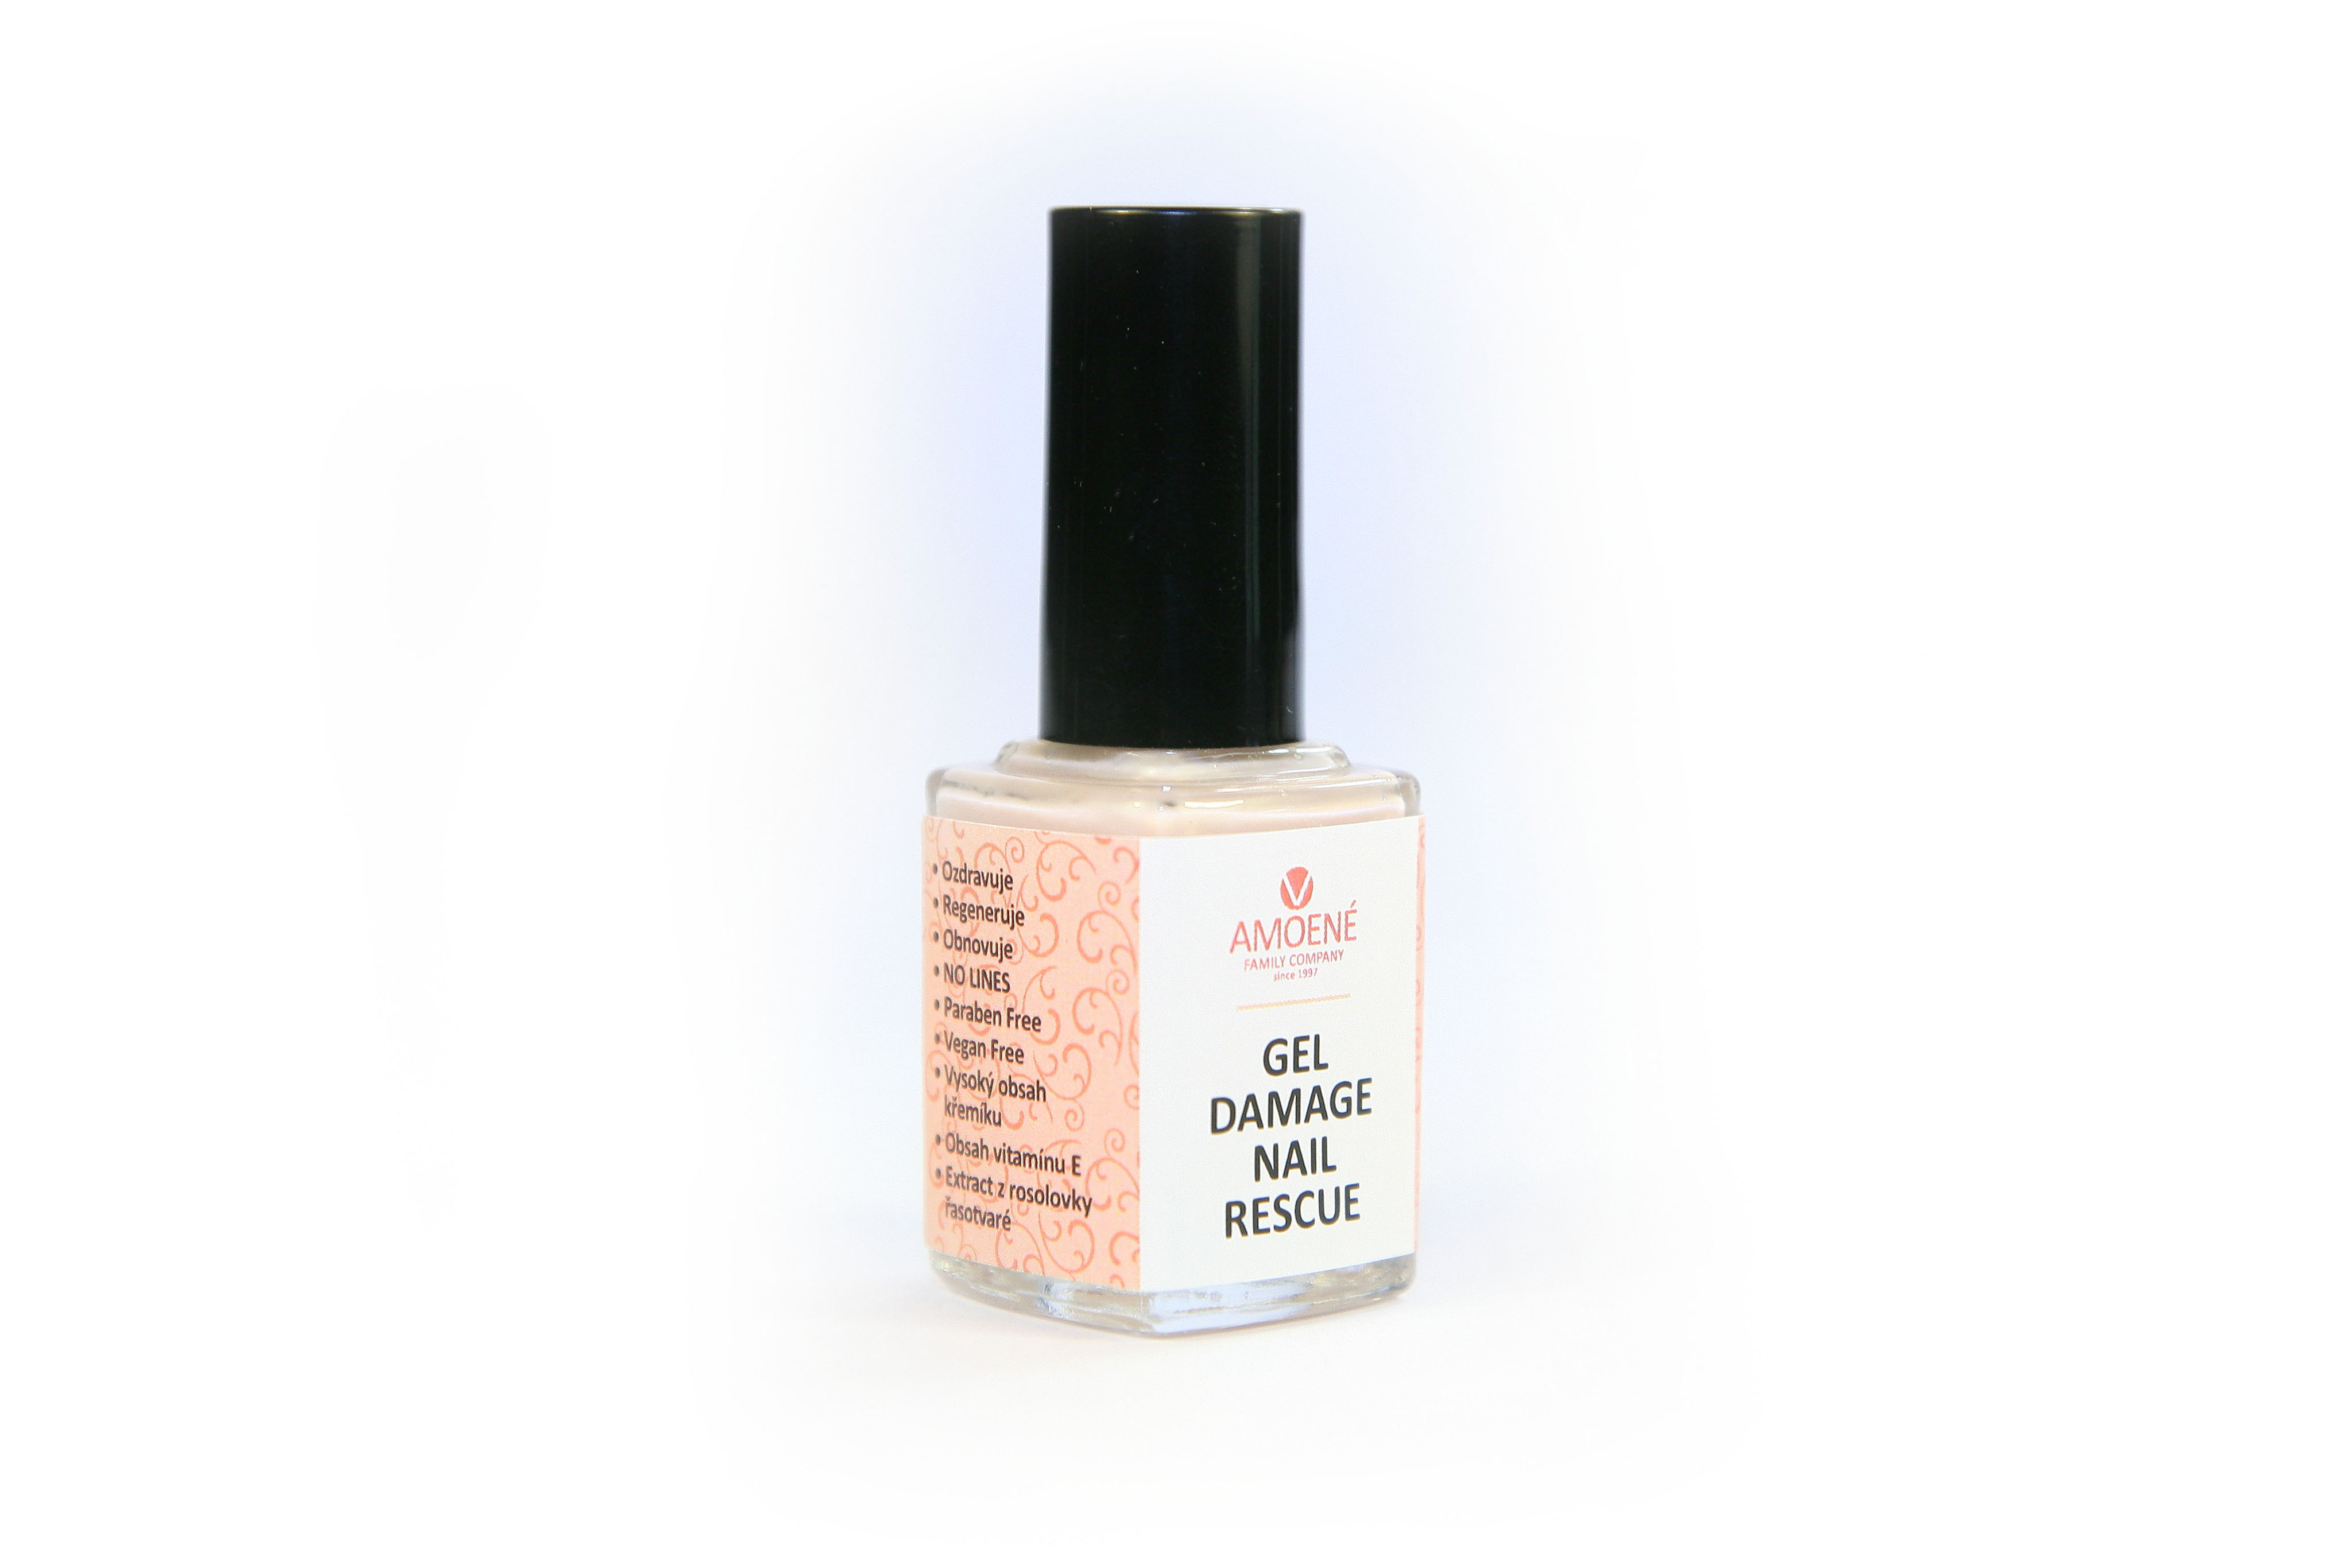 Gel damage nail rescue , 12 ml